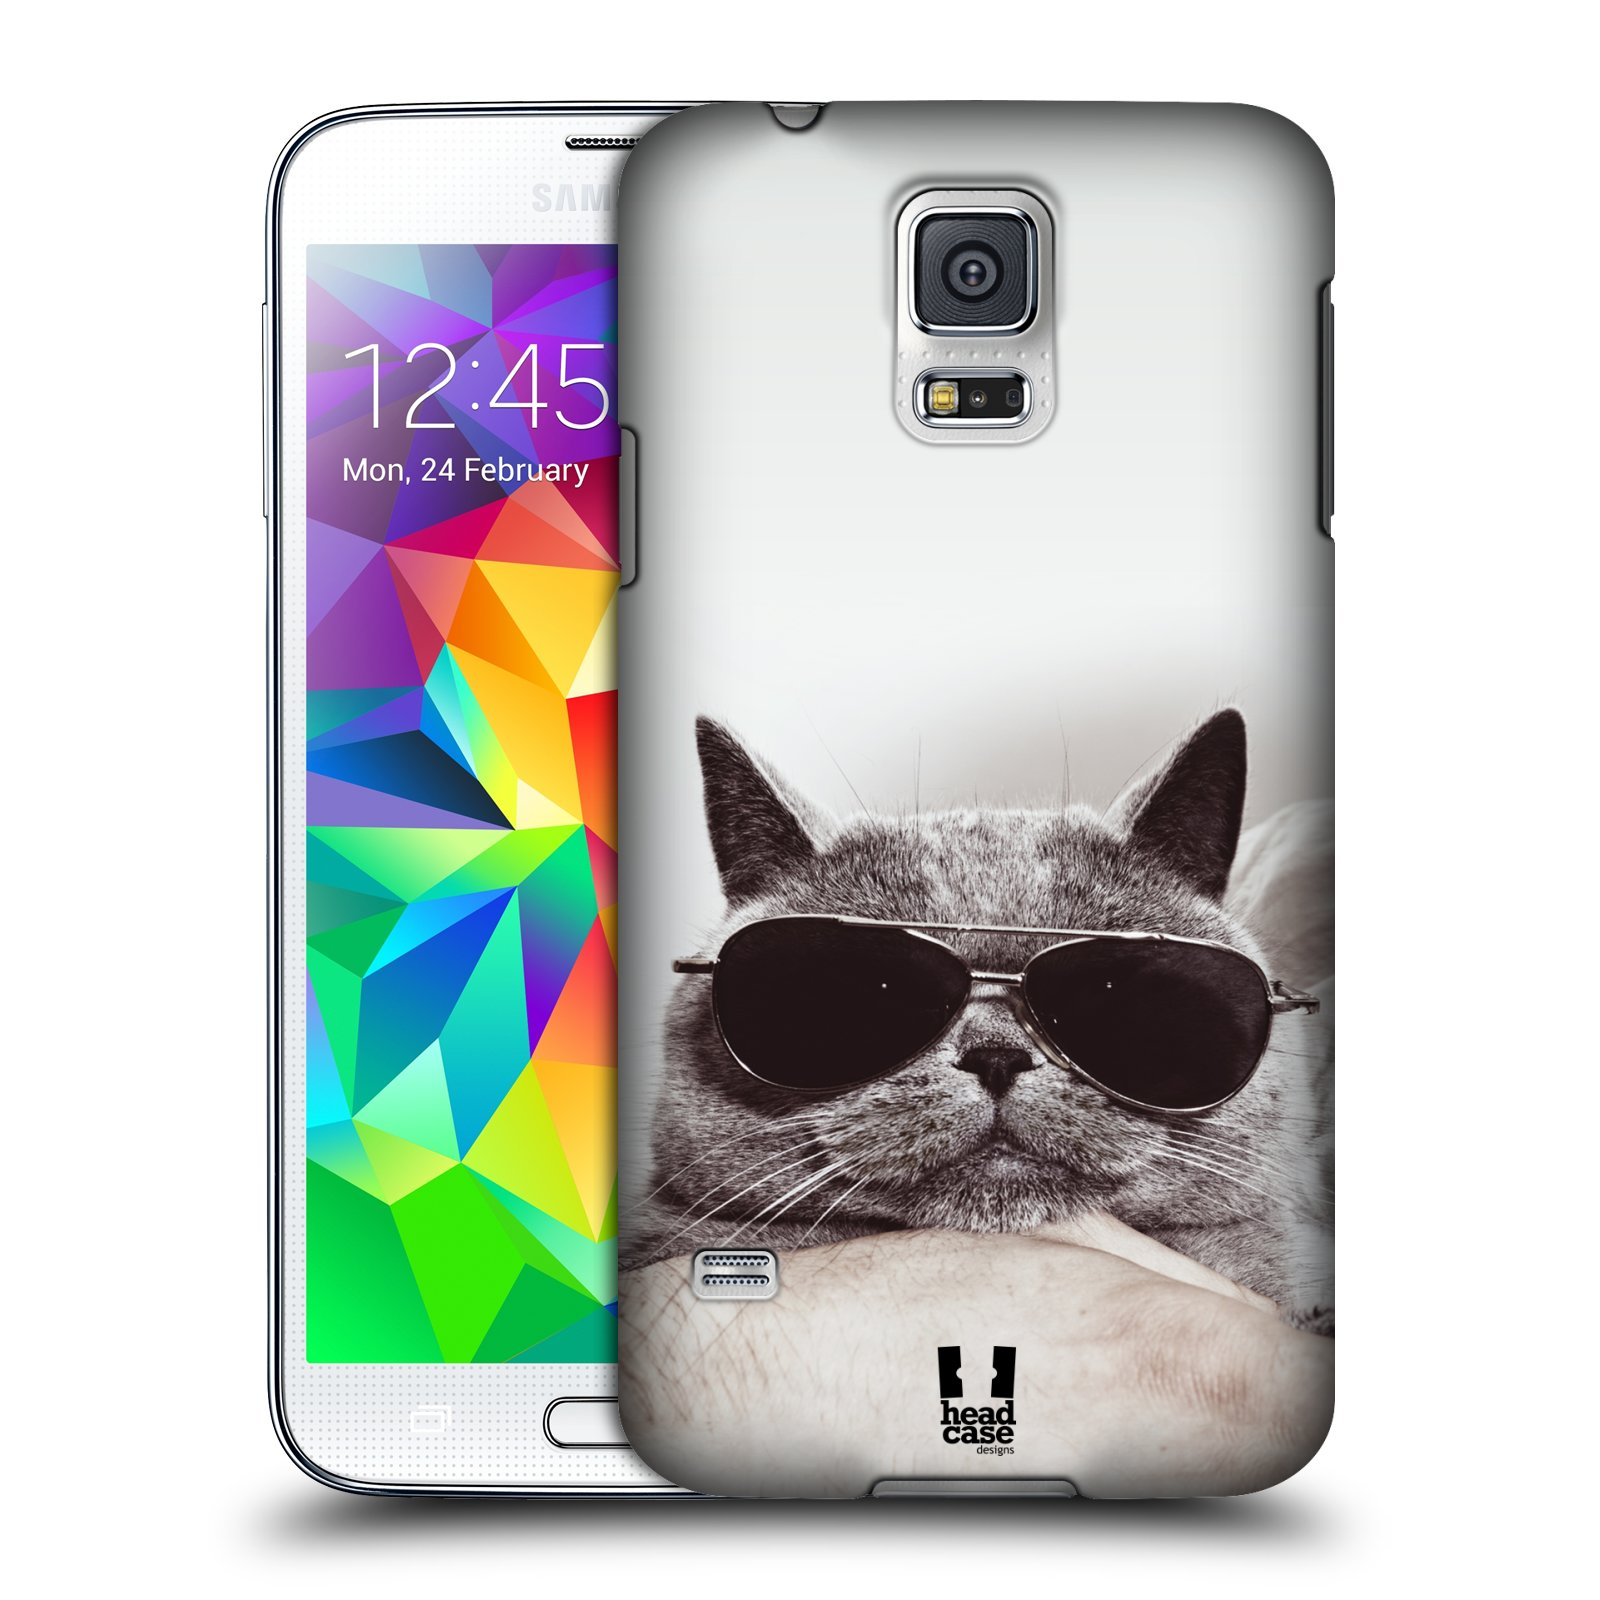 HEAD CASE DESIGNS CATS CASE COVER FOR SAMSUNG GALAXY S5